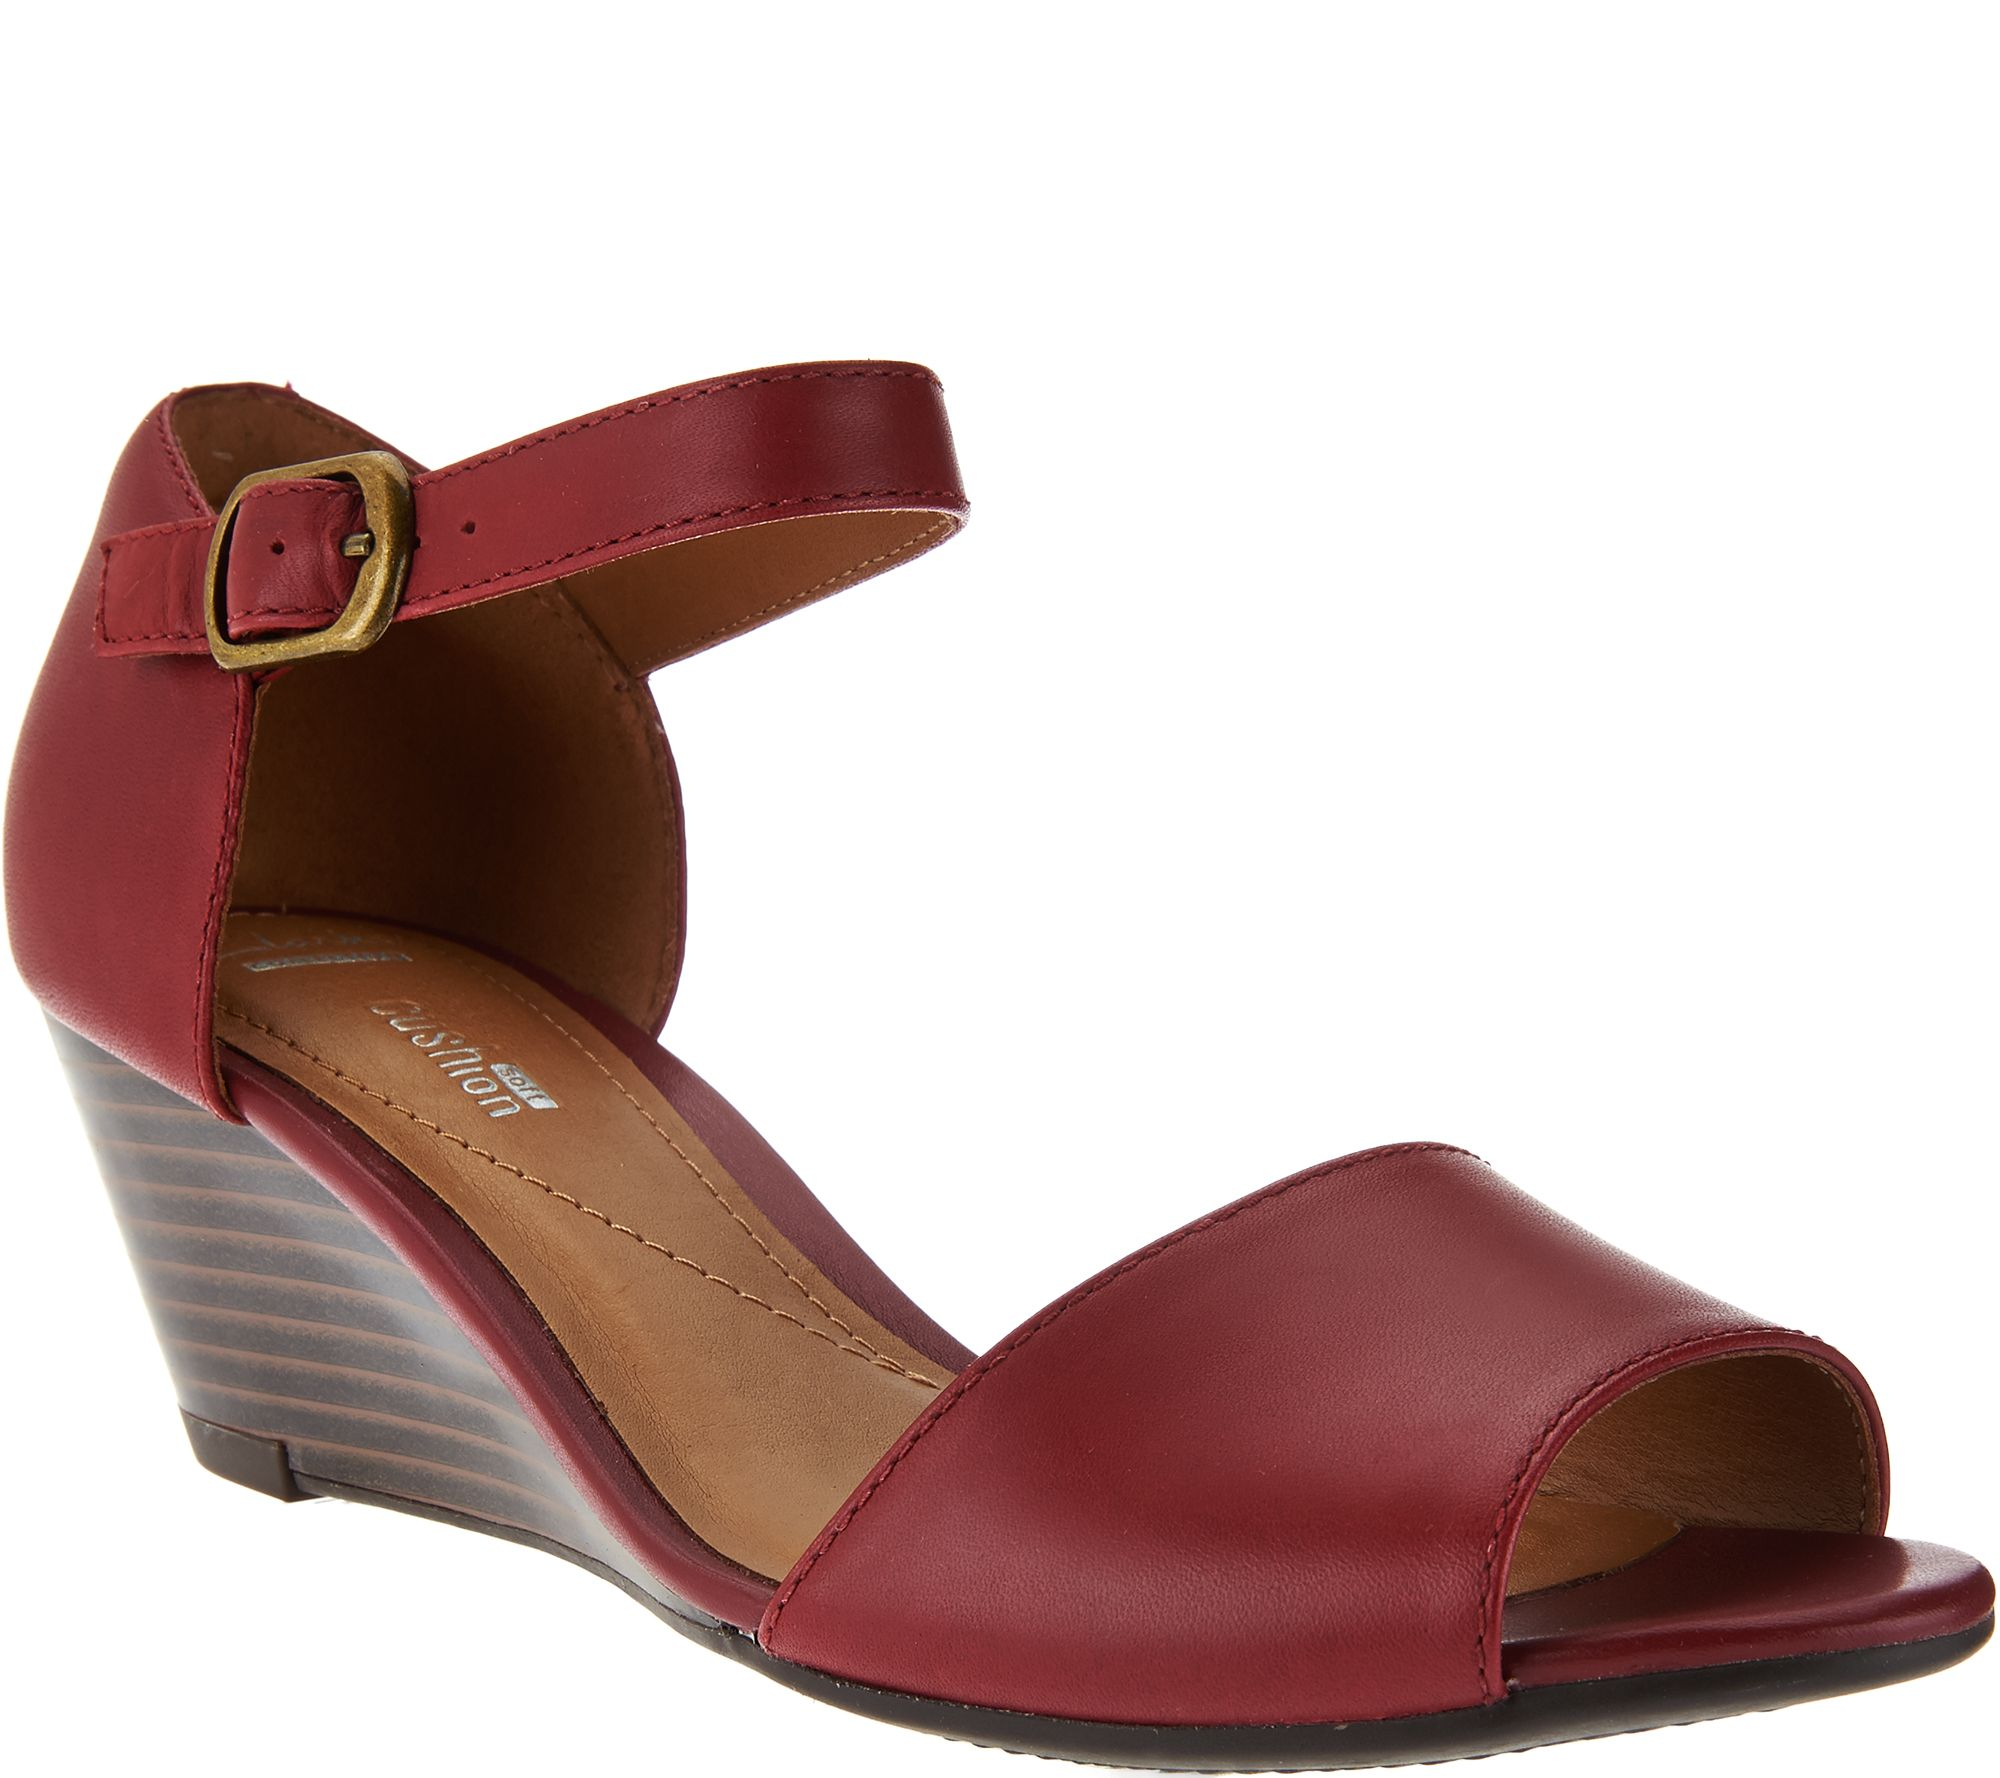 223cfd1a085d Clarks Leather Open Toe Wedge Sandals - Brielle Drive - Page 1 — QVC.com